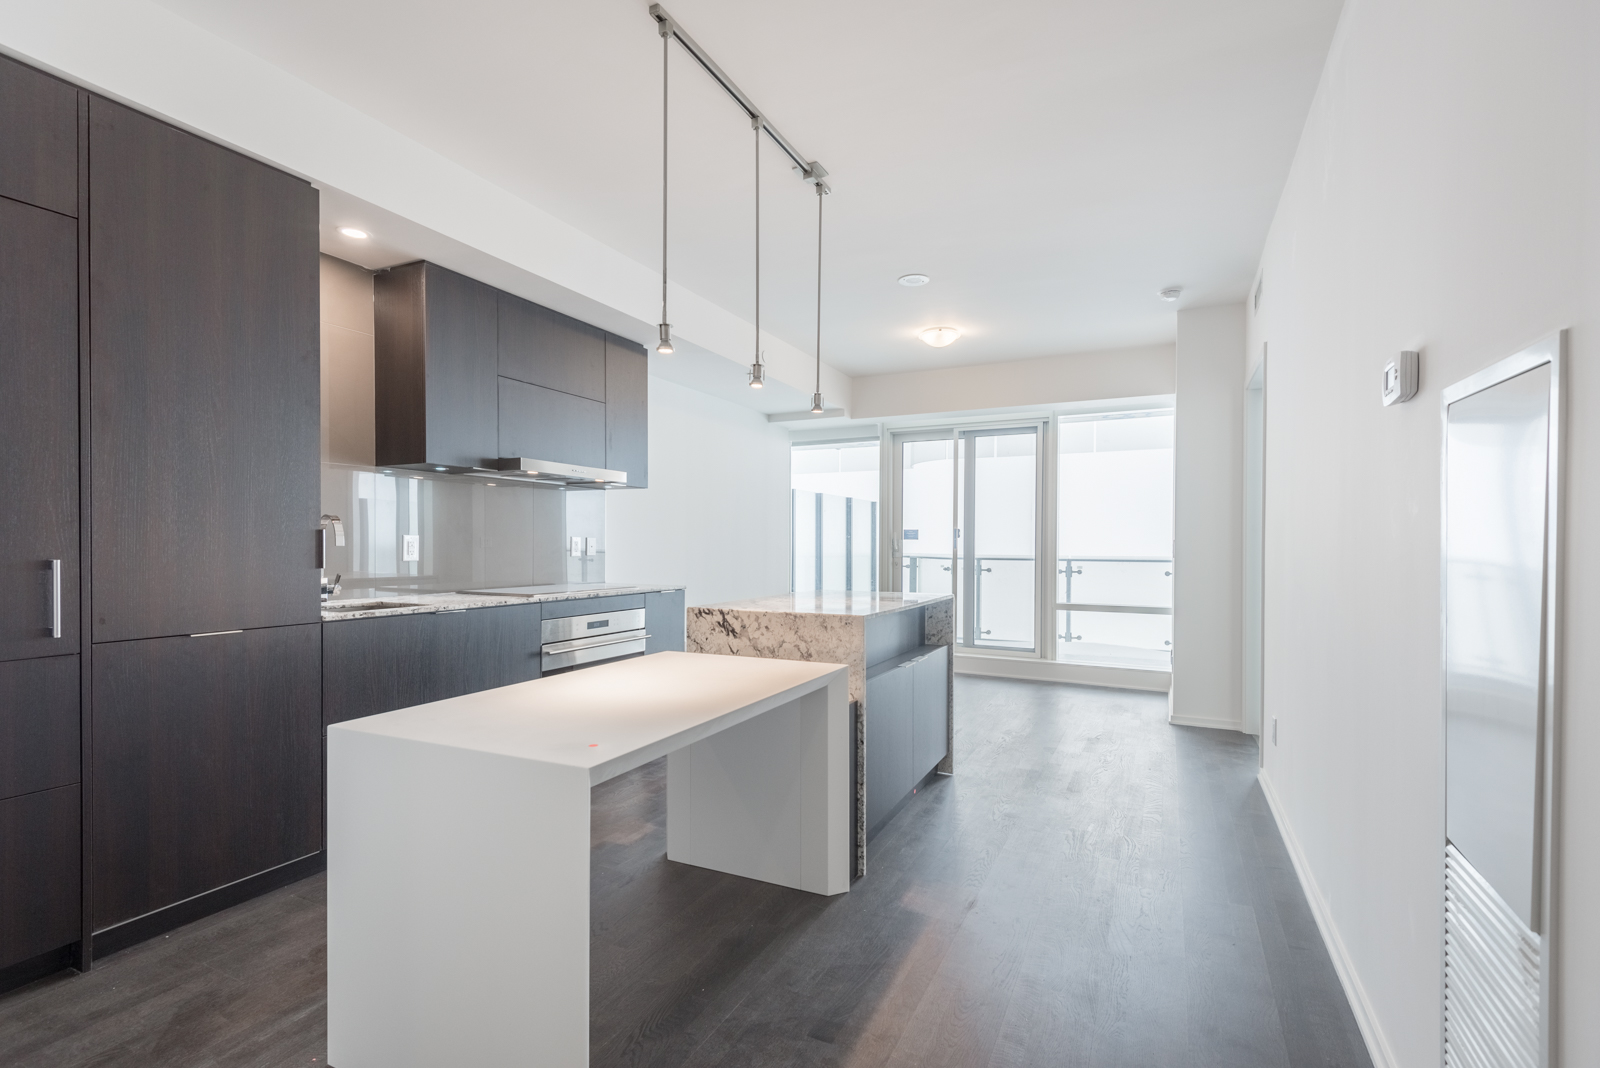 Photo Of 1 Bloor Interior, Showing Kitchen, Dining And Also The Living Room. By Wins Lai, Toronto Real Estate Agent. So due to, while, since, therefore same, less, rather.